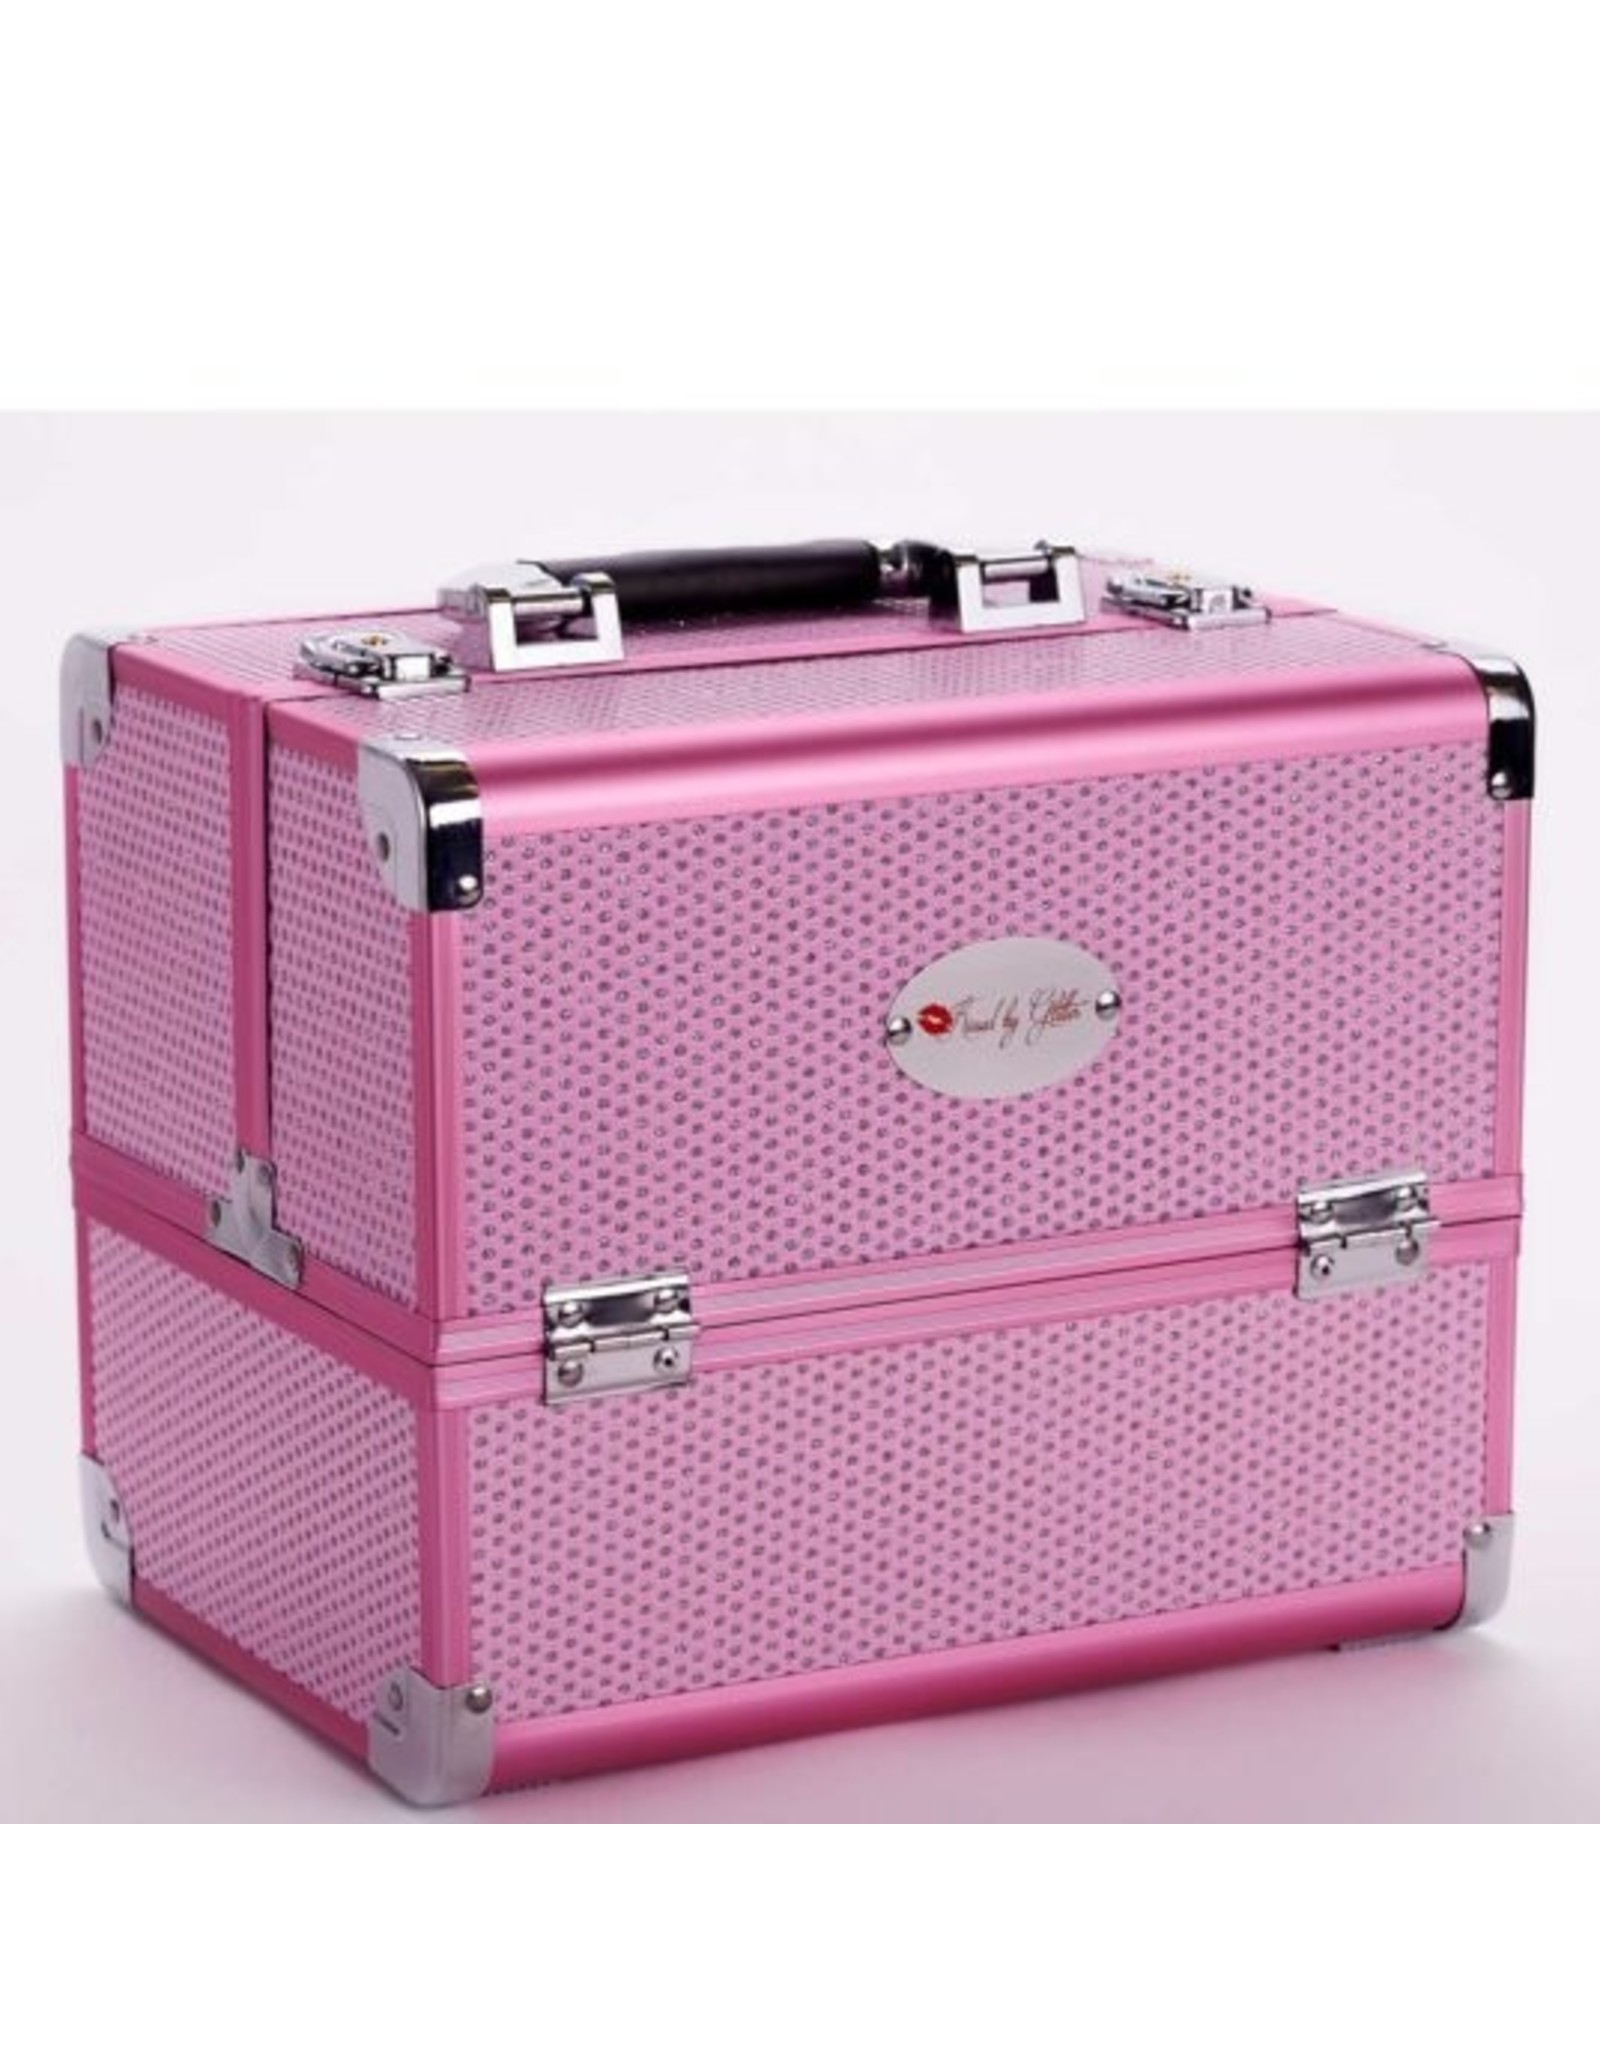 KISSED BY GLITTER MAKEUP BOX